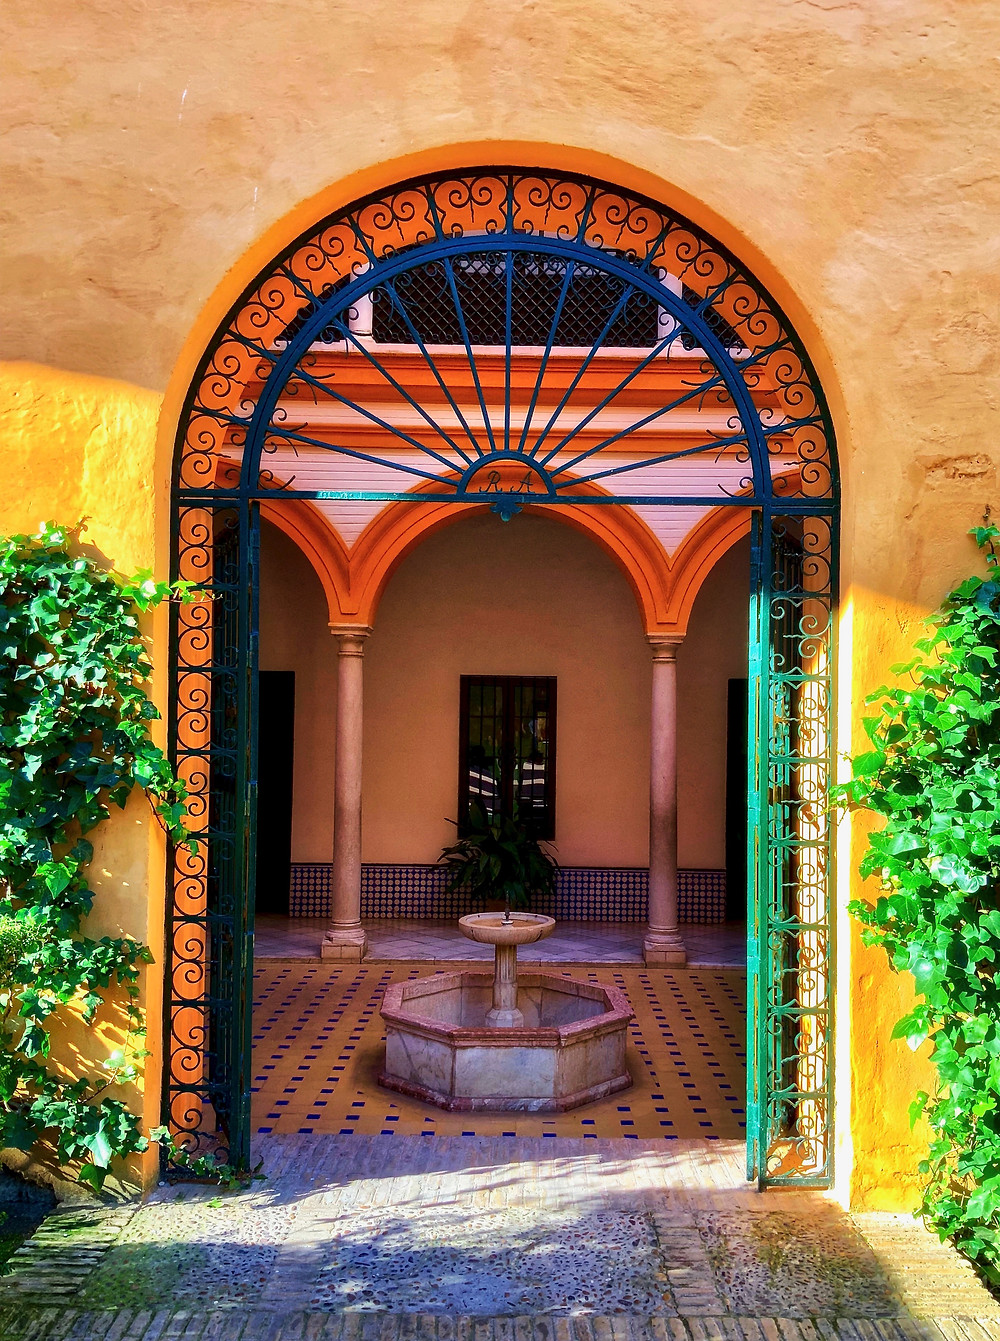 a beautiful orange hued doorway in the Alcazar Gardens in Seville